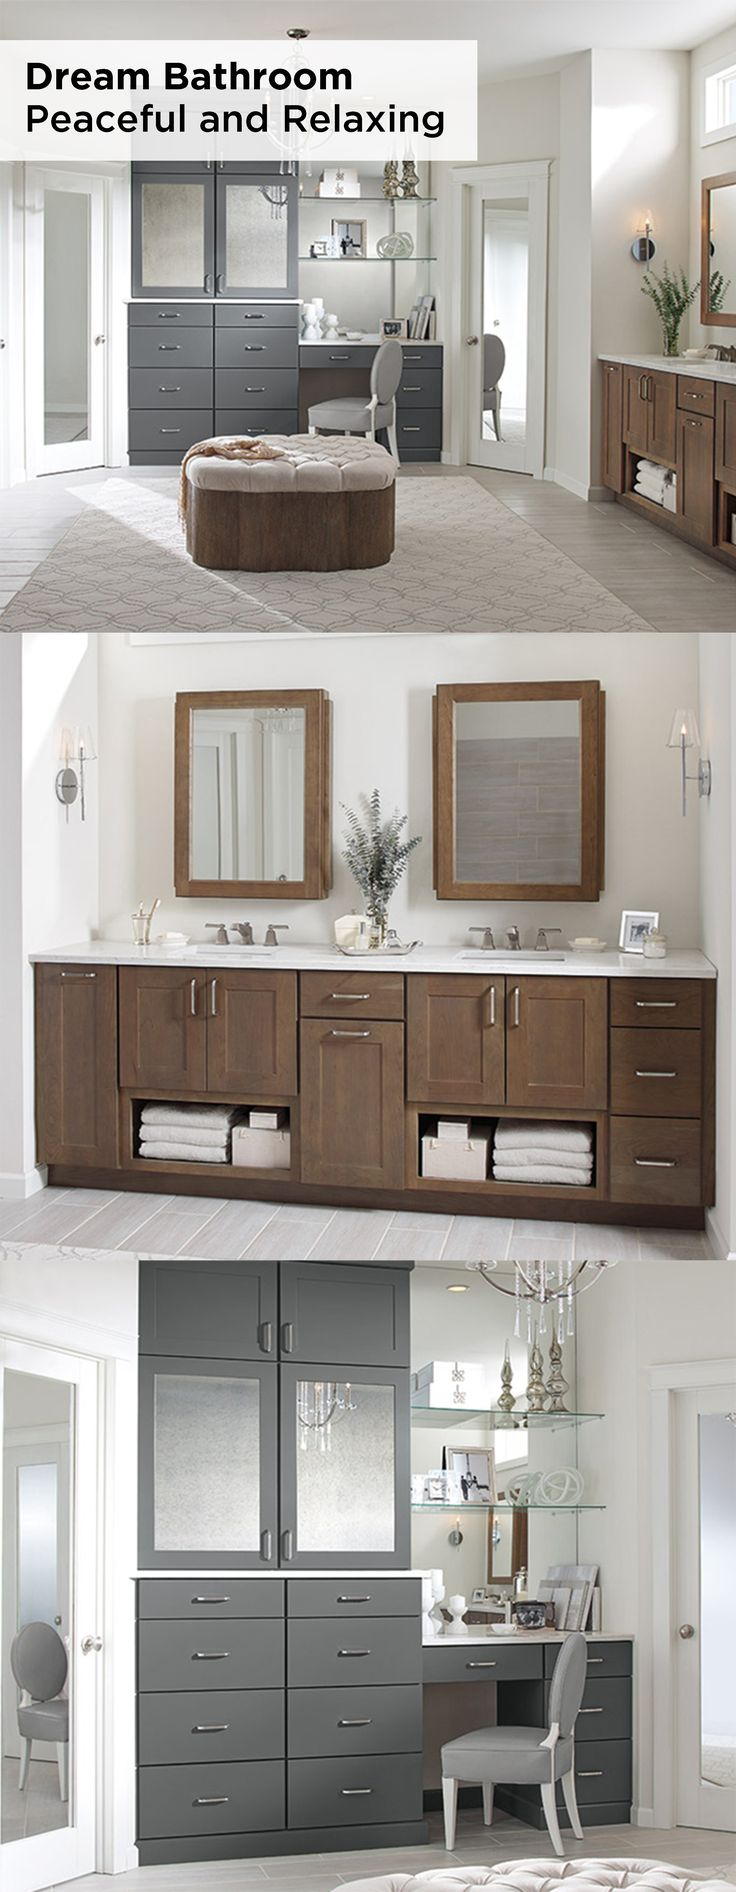 Diamond design kitchen bath gallery - Let Shaker Style Breman Diamond Cabinets In Morel And